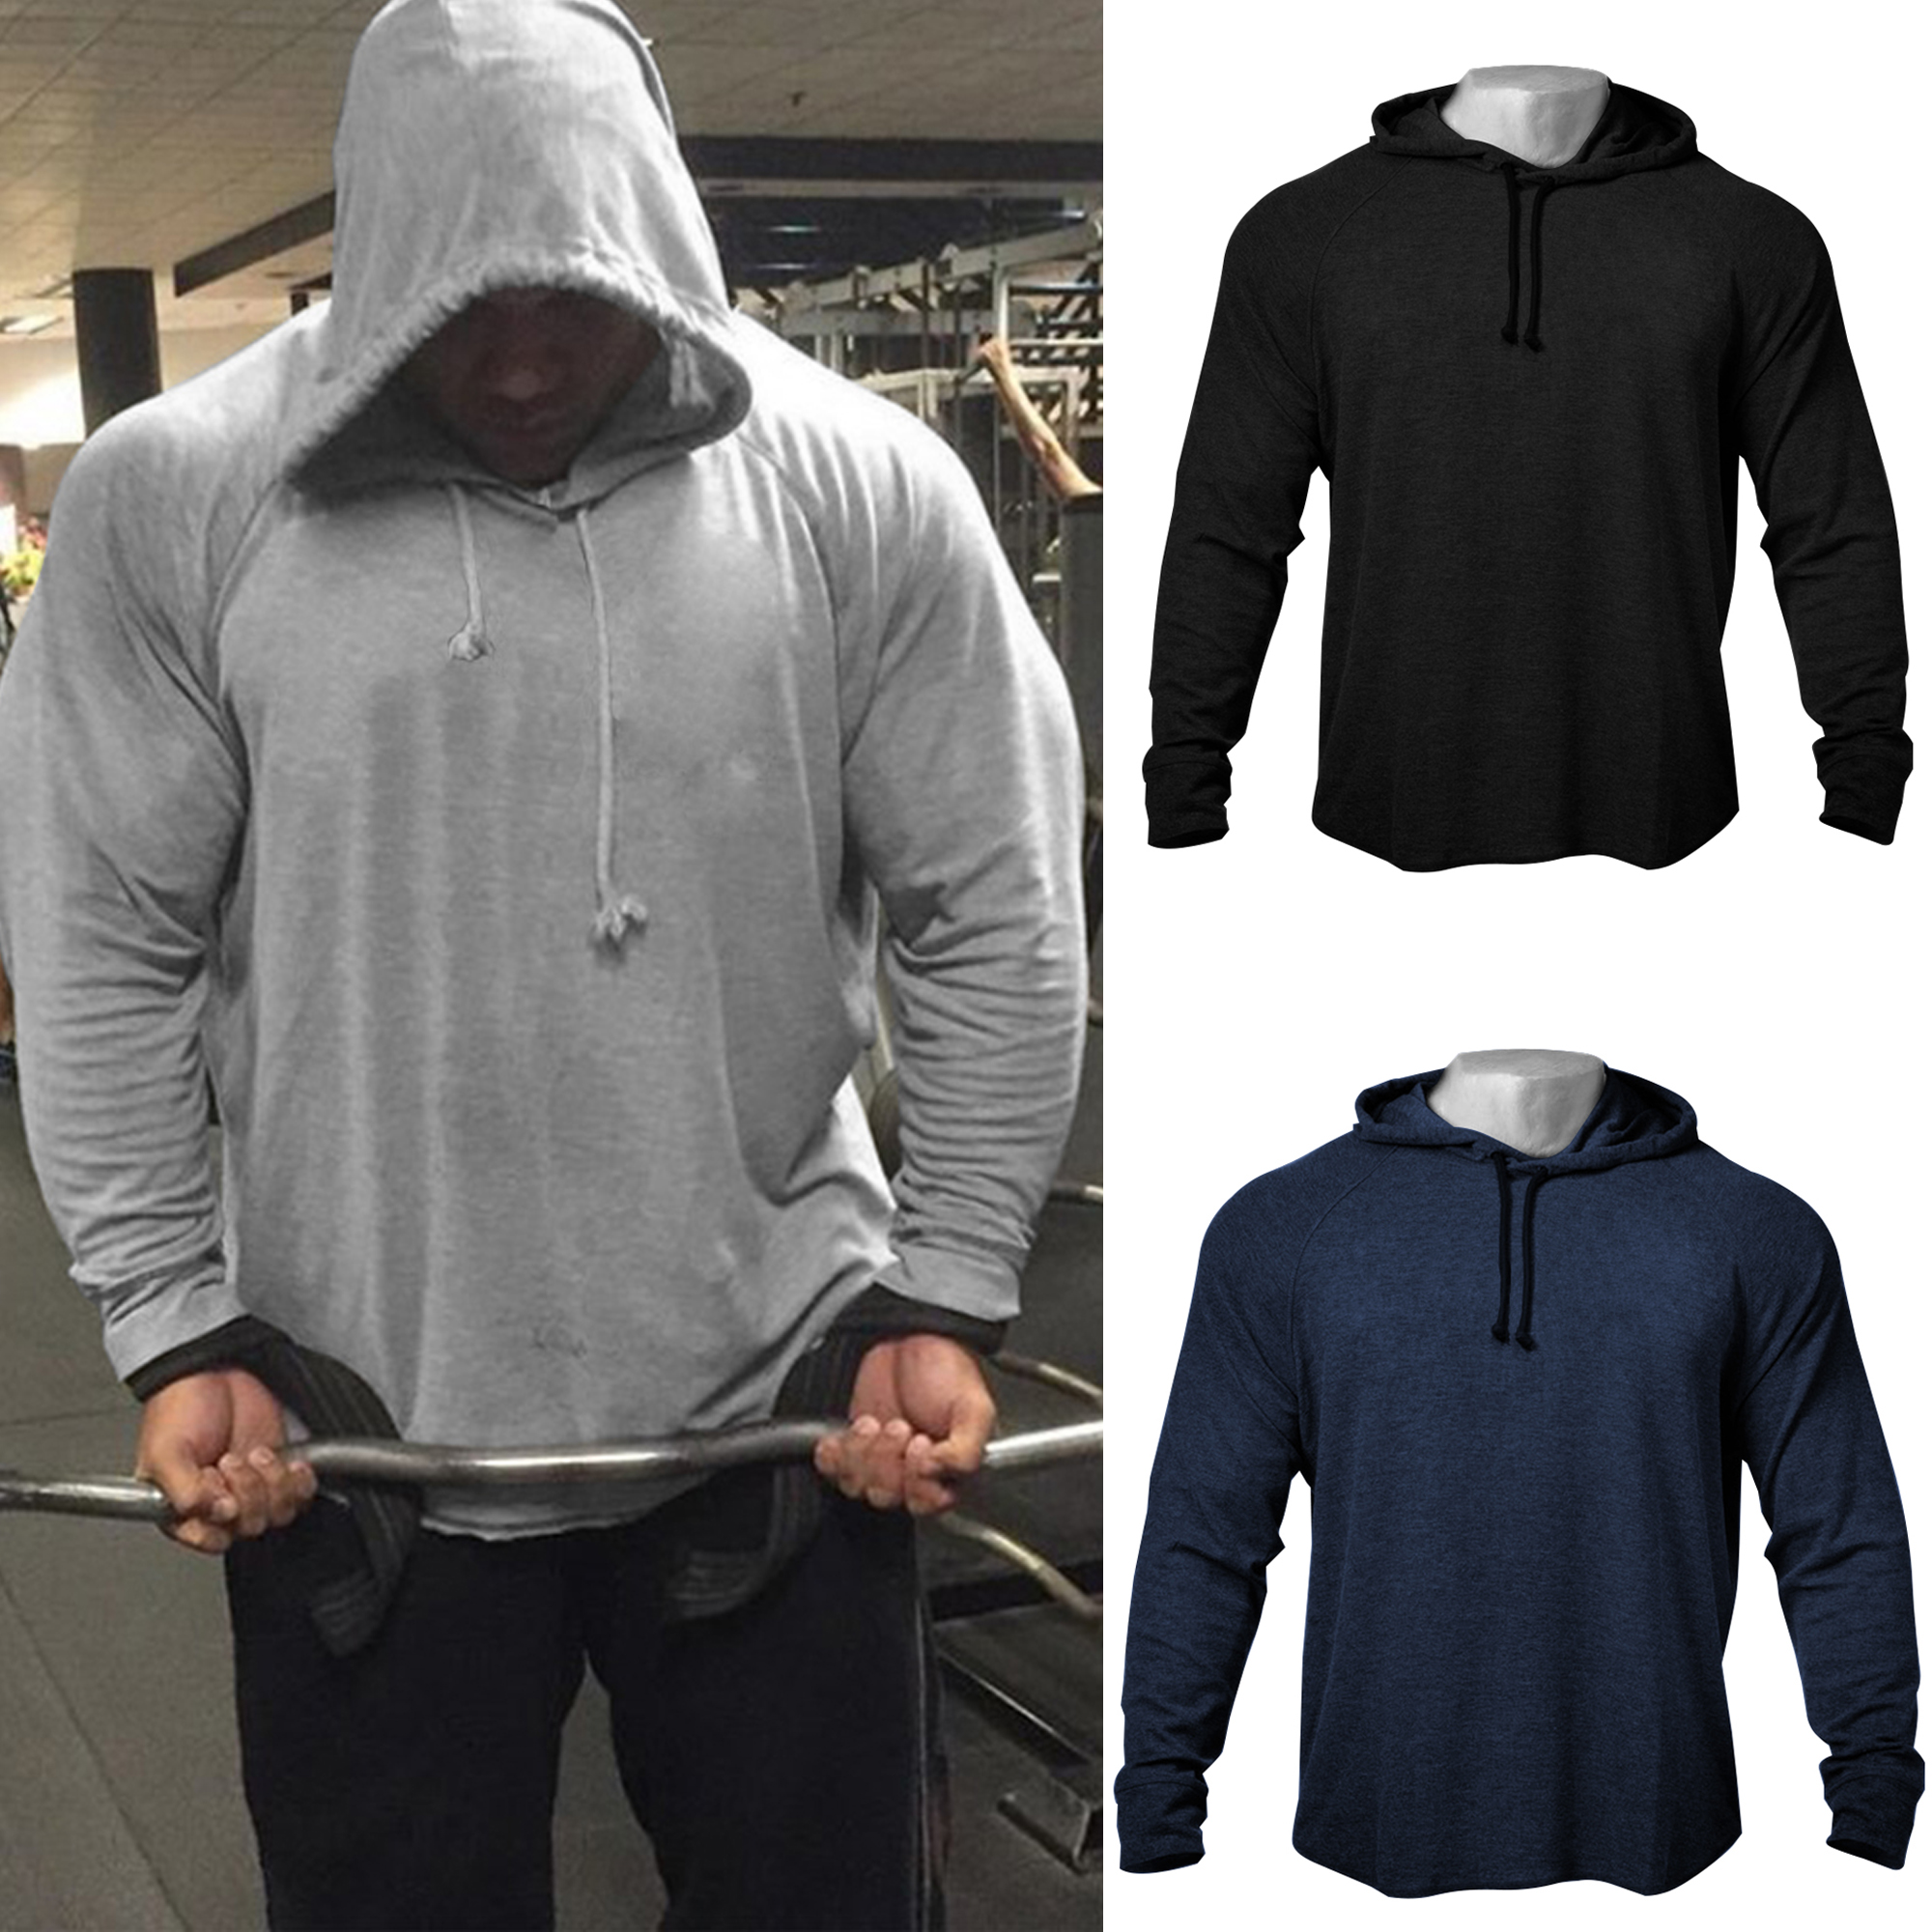 Men's GYM Fitness Bodybuilding Solid Raglan Hooded Sweatshirts High Quality Cotton Raw-Cut Muscle Fit Hoodies Tracksuit Top